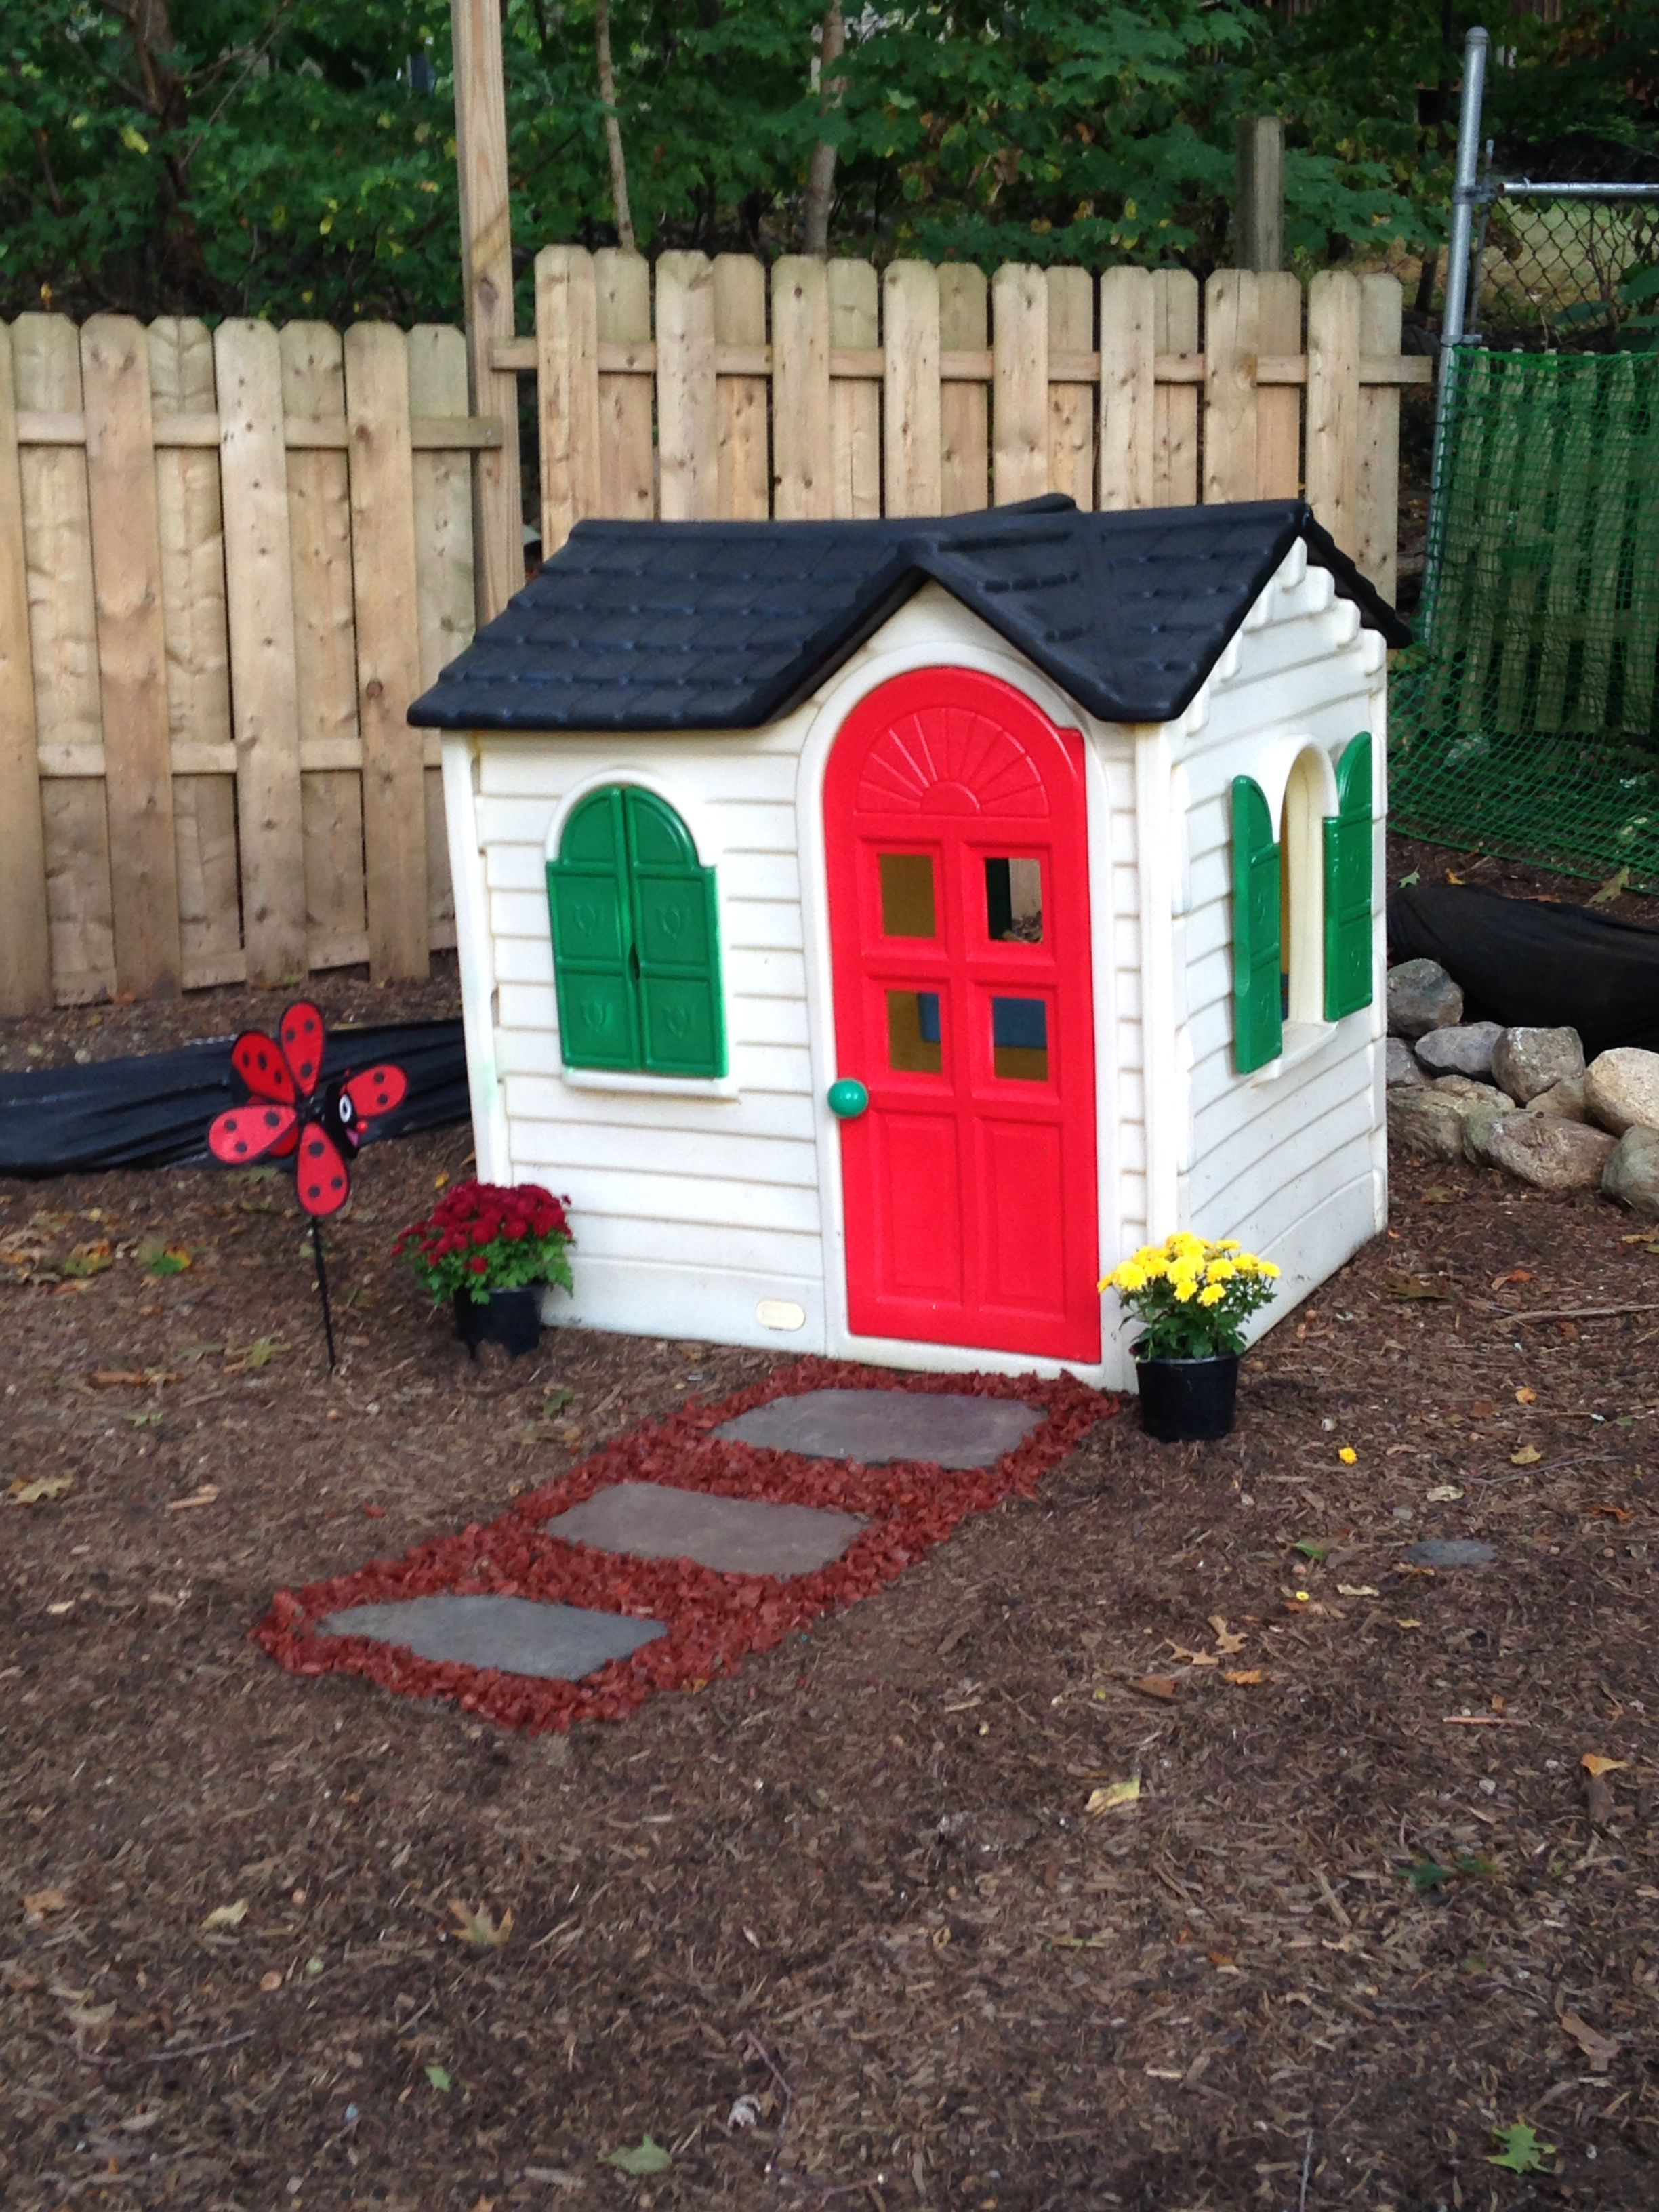 Step 2 Playhouse Makeover This Diy Project Was Rather Easy To Do Turn An Old Worn Out Outdoor Toy Into A Backyard Play Spaces Backyard Playset Play Houses